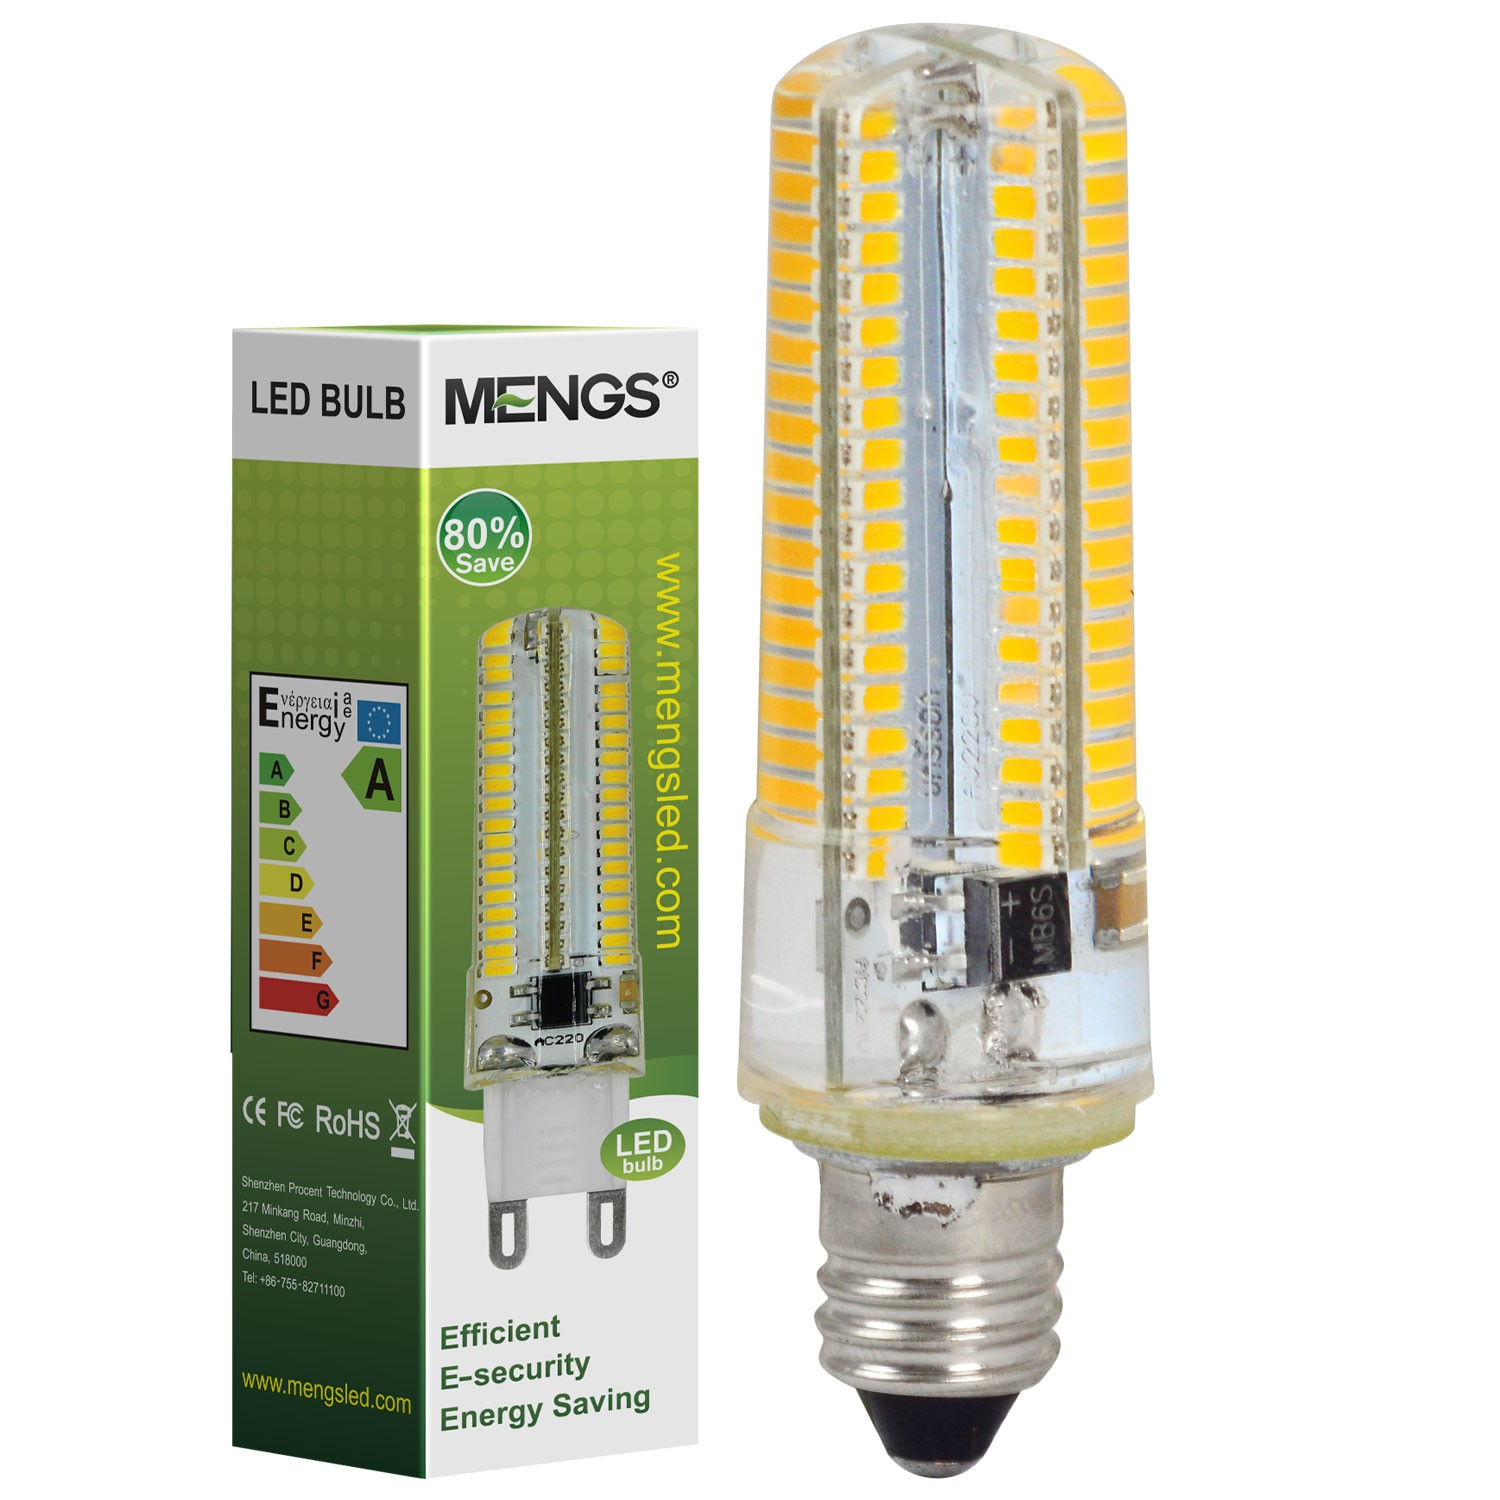 Mengsled Mengs E11 7w Led Light 152x 3014 Smd Led Bulb Lamp In Warm White Cool White Energy